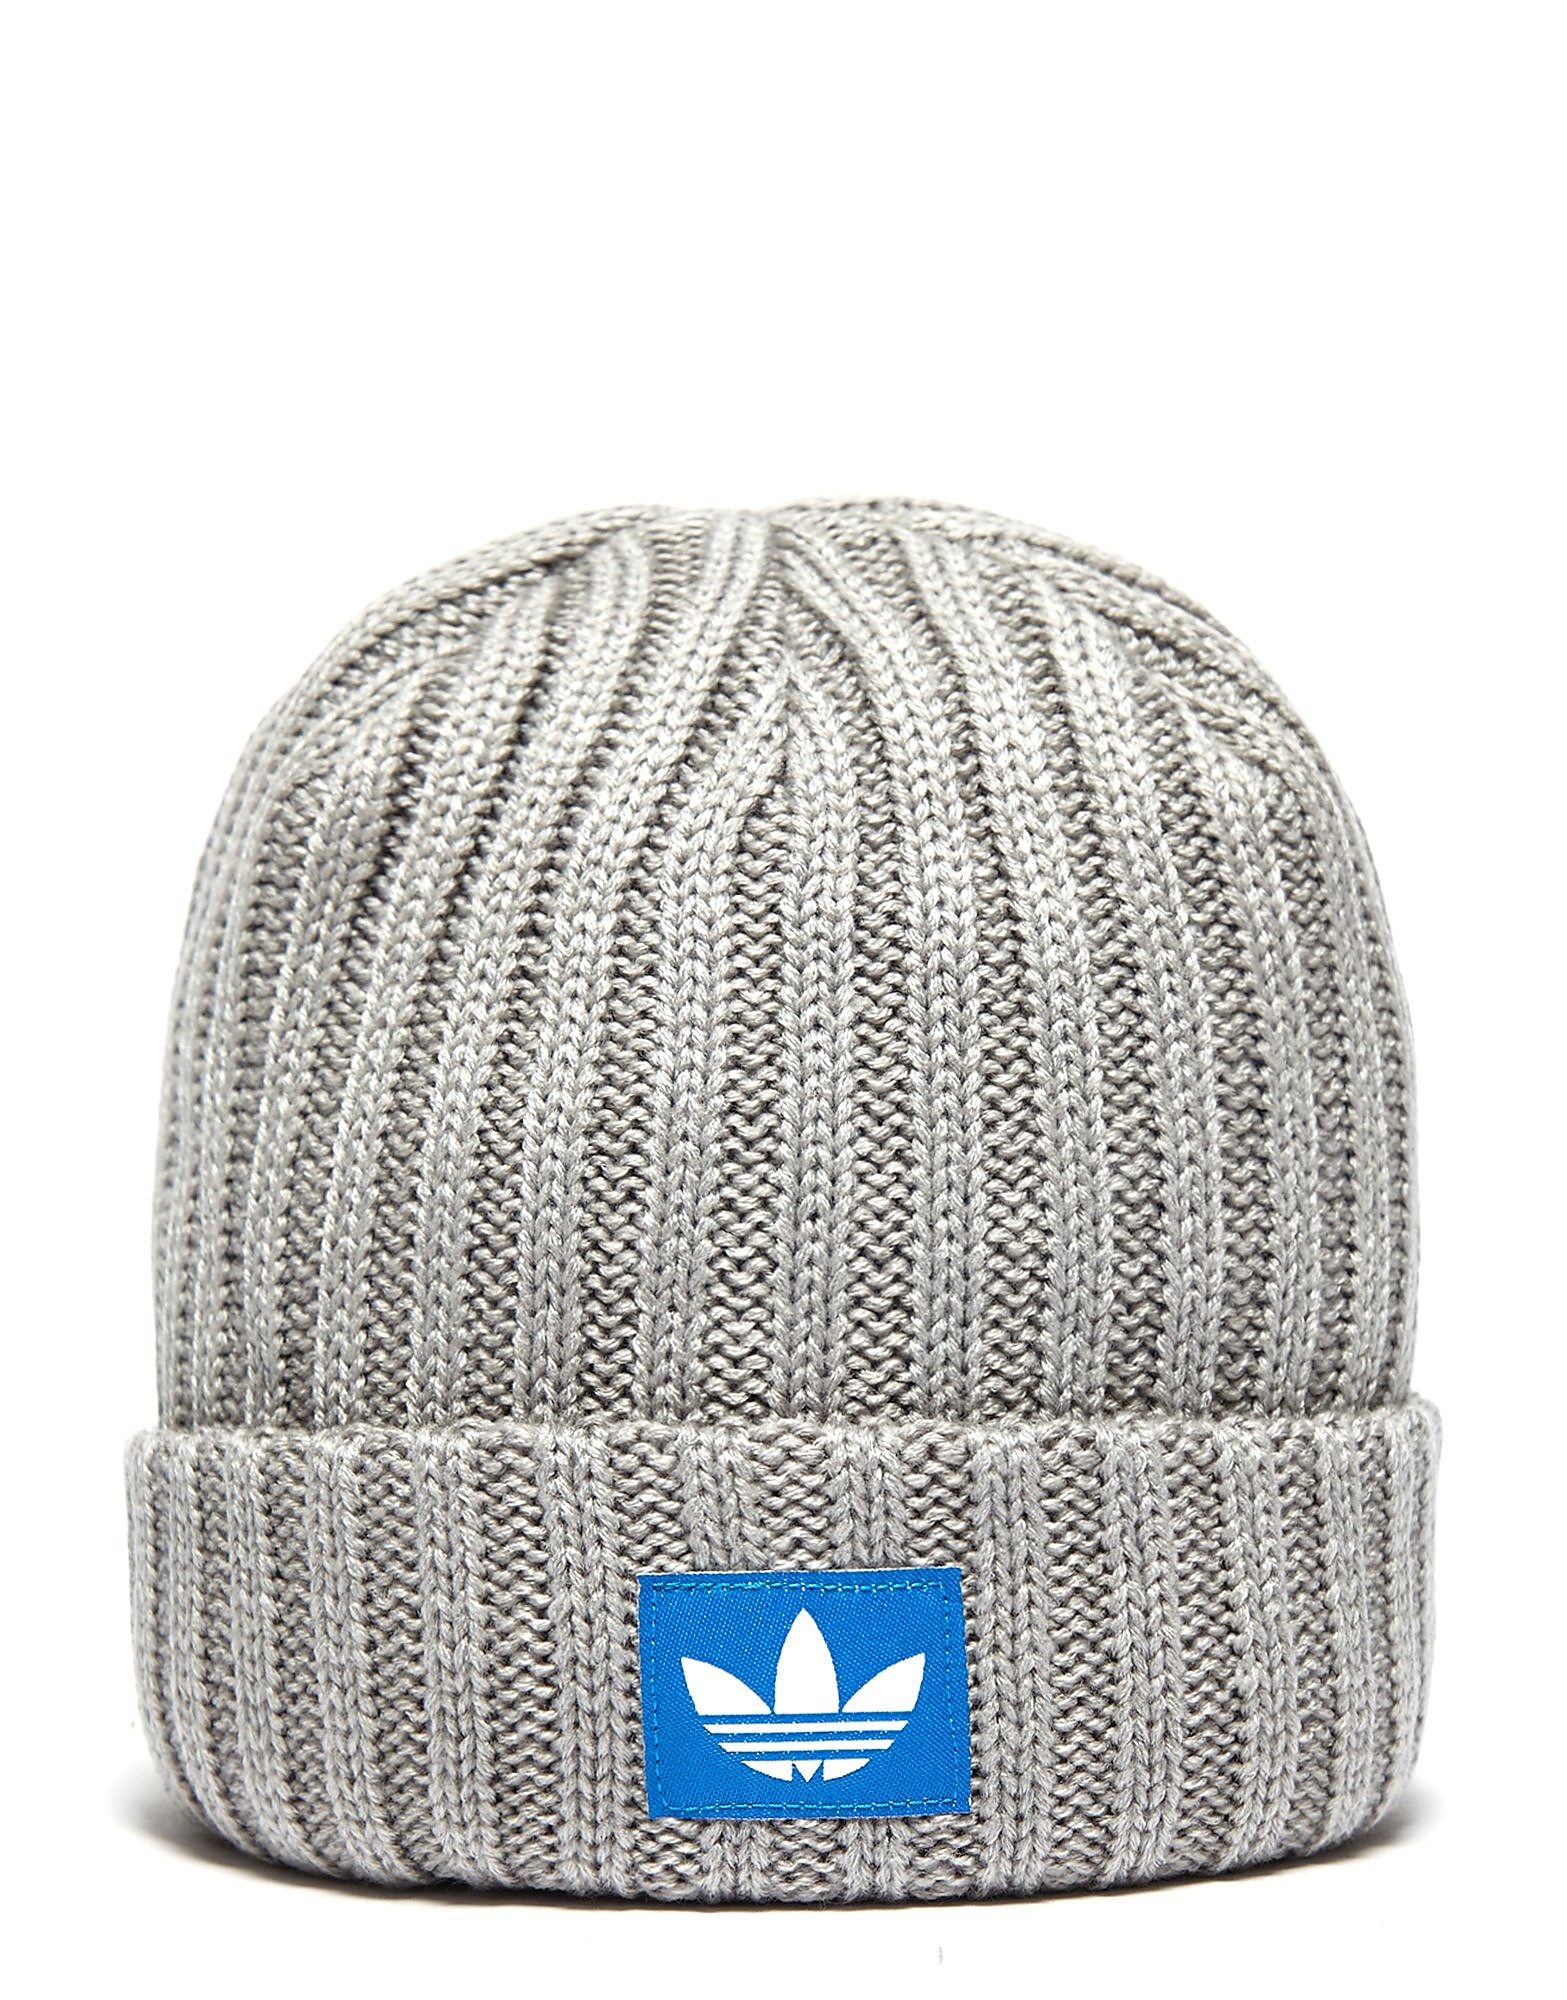 adidas Originals Trefoil Fisherman Beanie